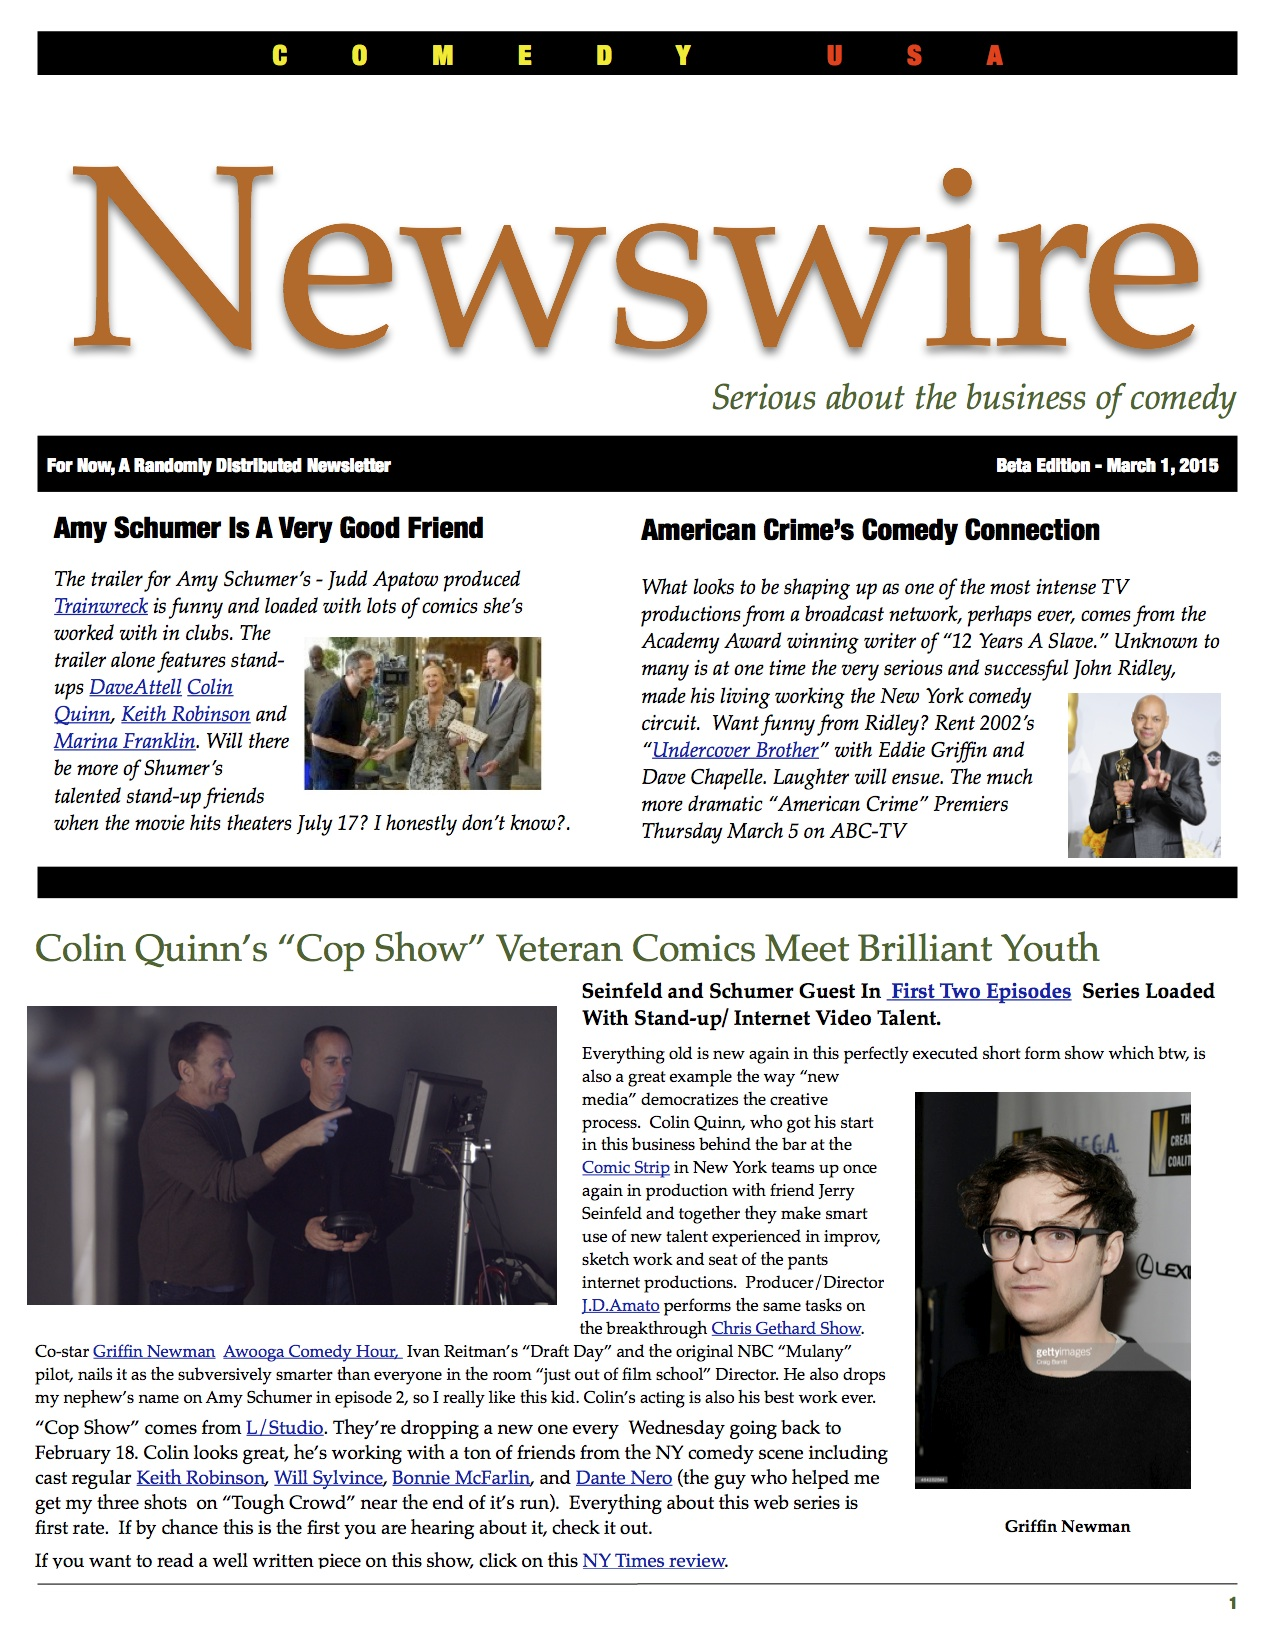 Newswire Front 3:1:15